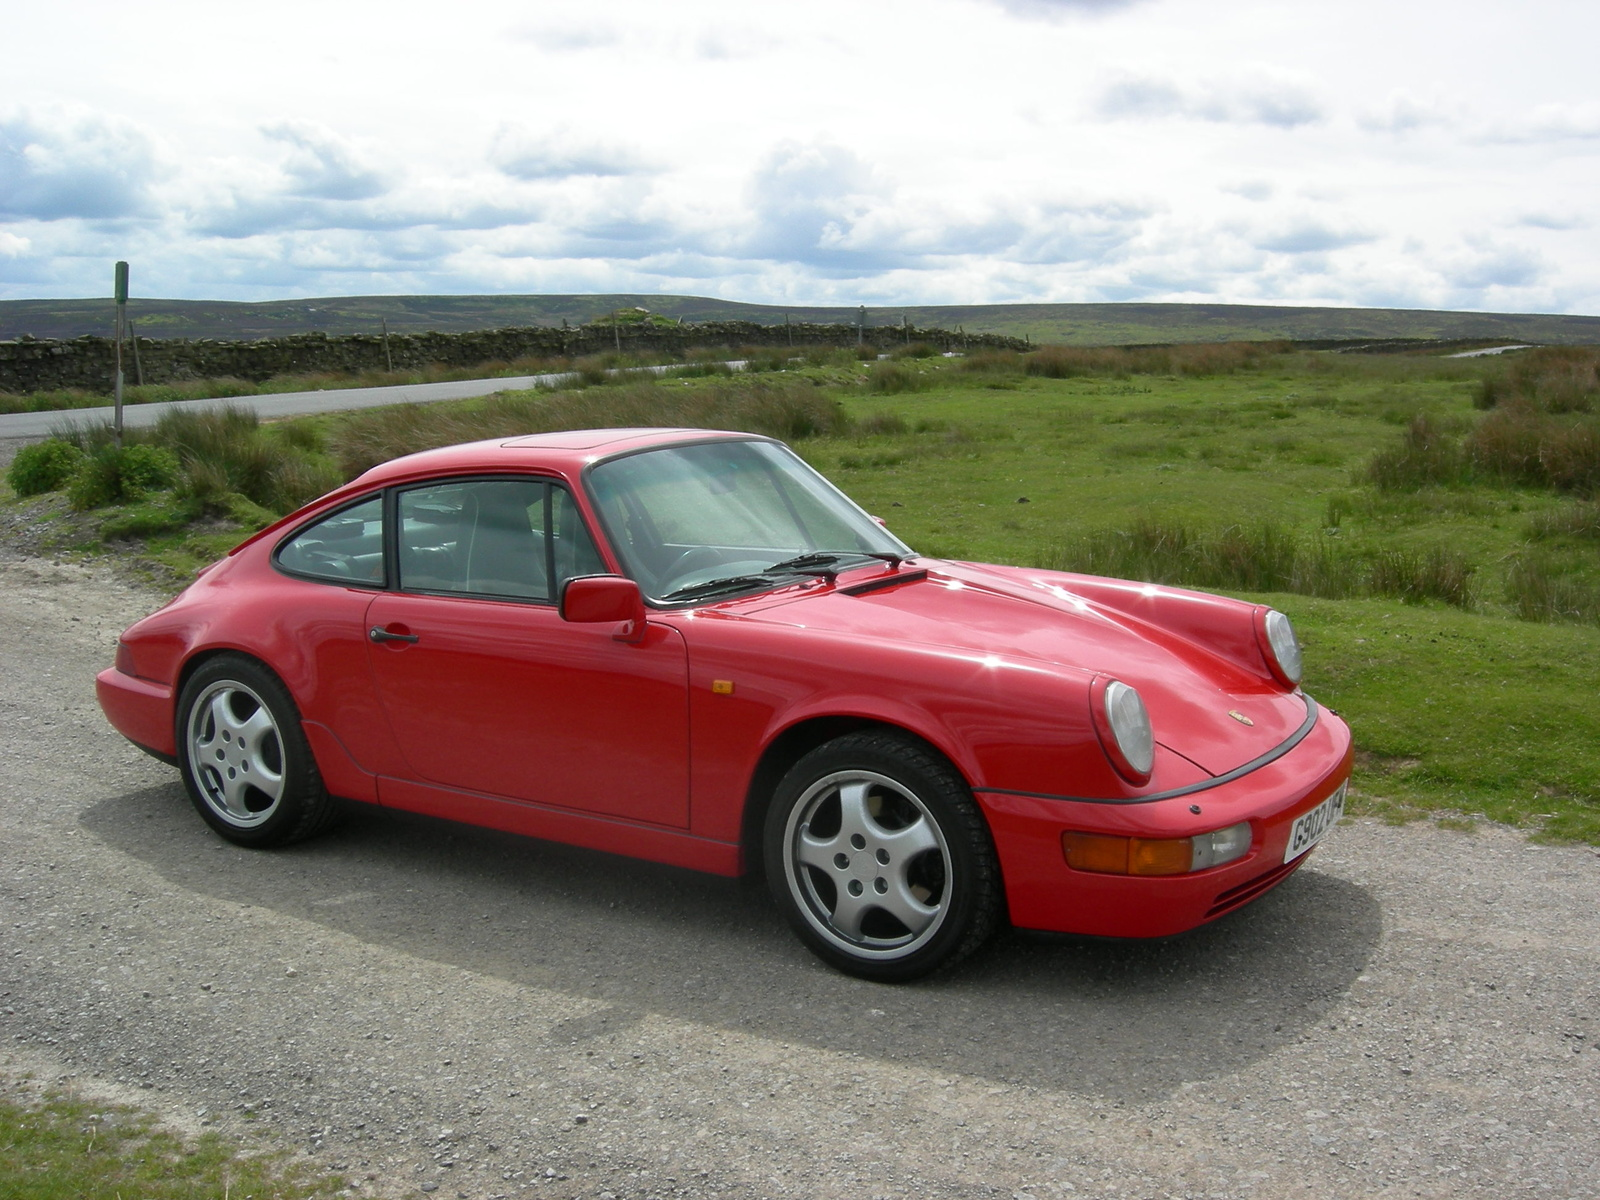 The donor vehicle is a 1990 Carrera 4 AWD in Guards Red. An original Australian car with 143,000 kilometres.